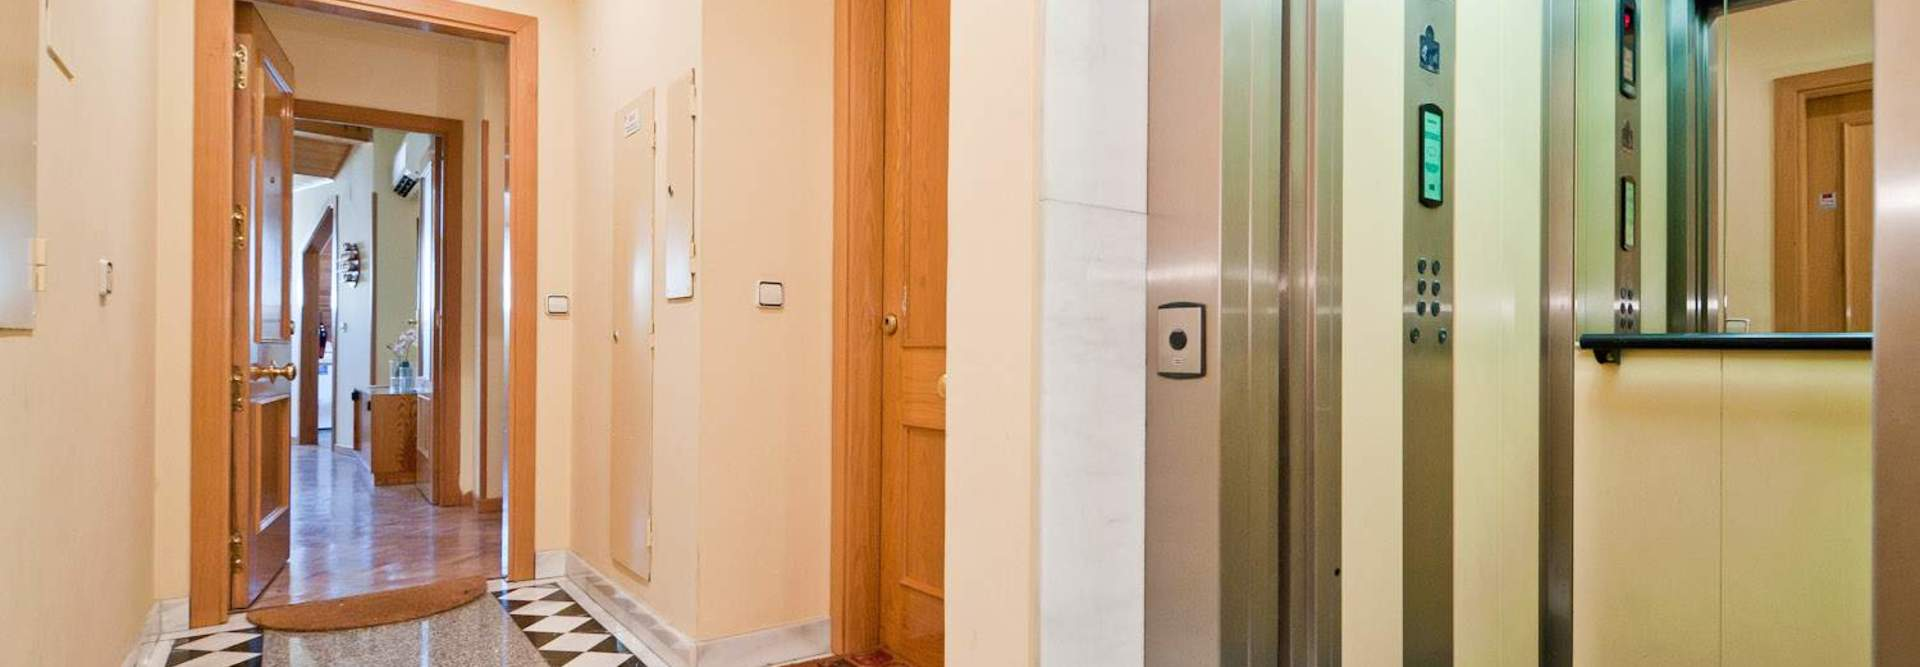 Home alquiler apartamento madrid centro mad4rent  28